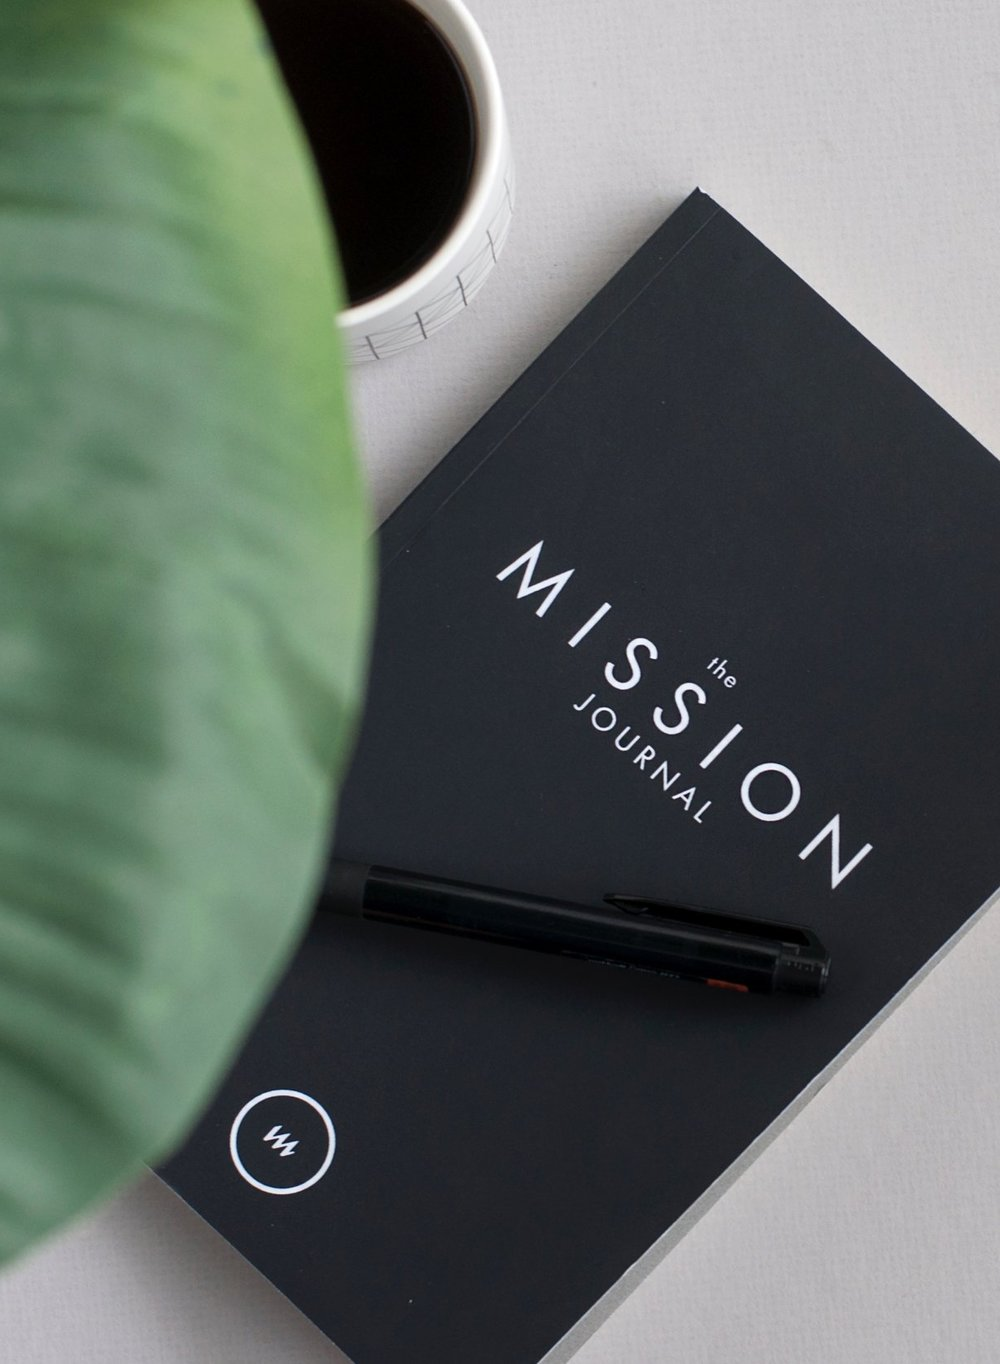 WHY THE MISSION JOURNAL MAKES ALL THE DIFFERENCE - Ever sit down to journal after an amazing day, only to realize you have 10 hours of writing and only 10 minutes of energy?Many people find a blank page paralyzing. The Mission Journal is designed with that in mind - to give you the space and structure to simply engage with the story God is writing in your life during this season.FINALLY, CAPTURE ALL GOD HAS FOR YOU.